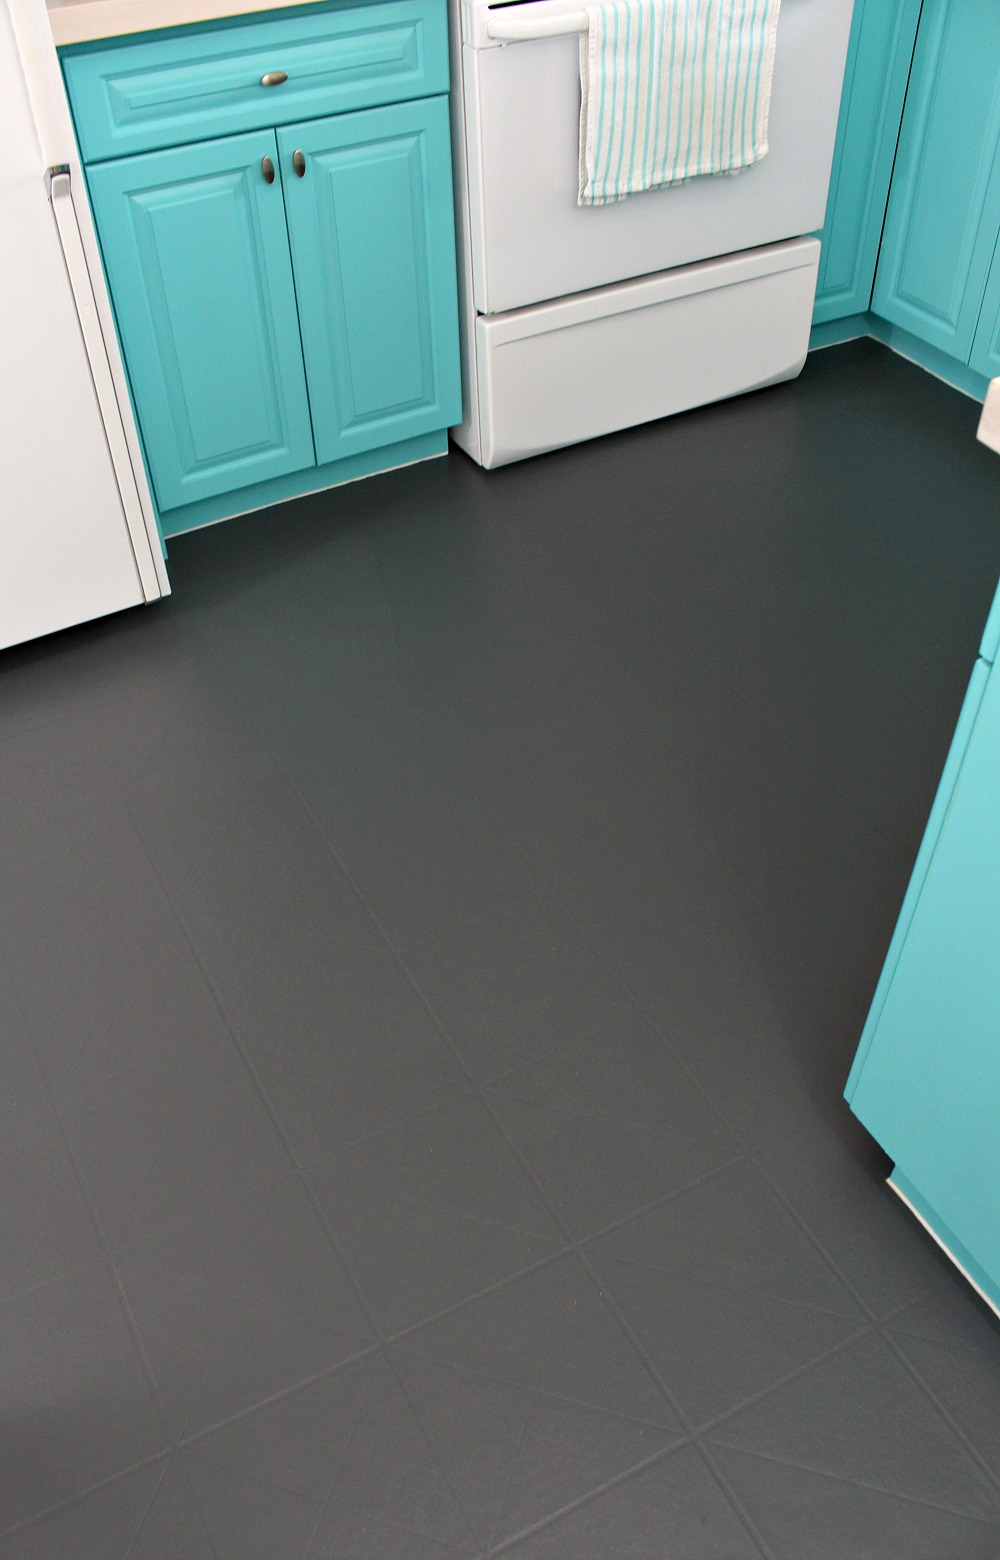 How to paint a vinyl floor diy painted floors dans le lakehouse diy painted kitchen floor dailygadgetfo Images